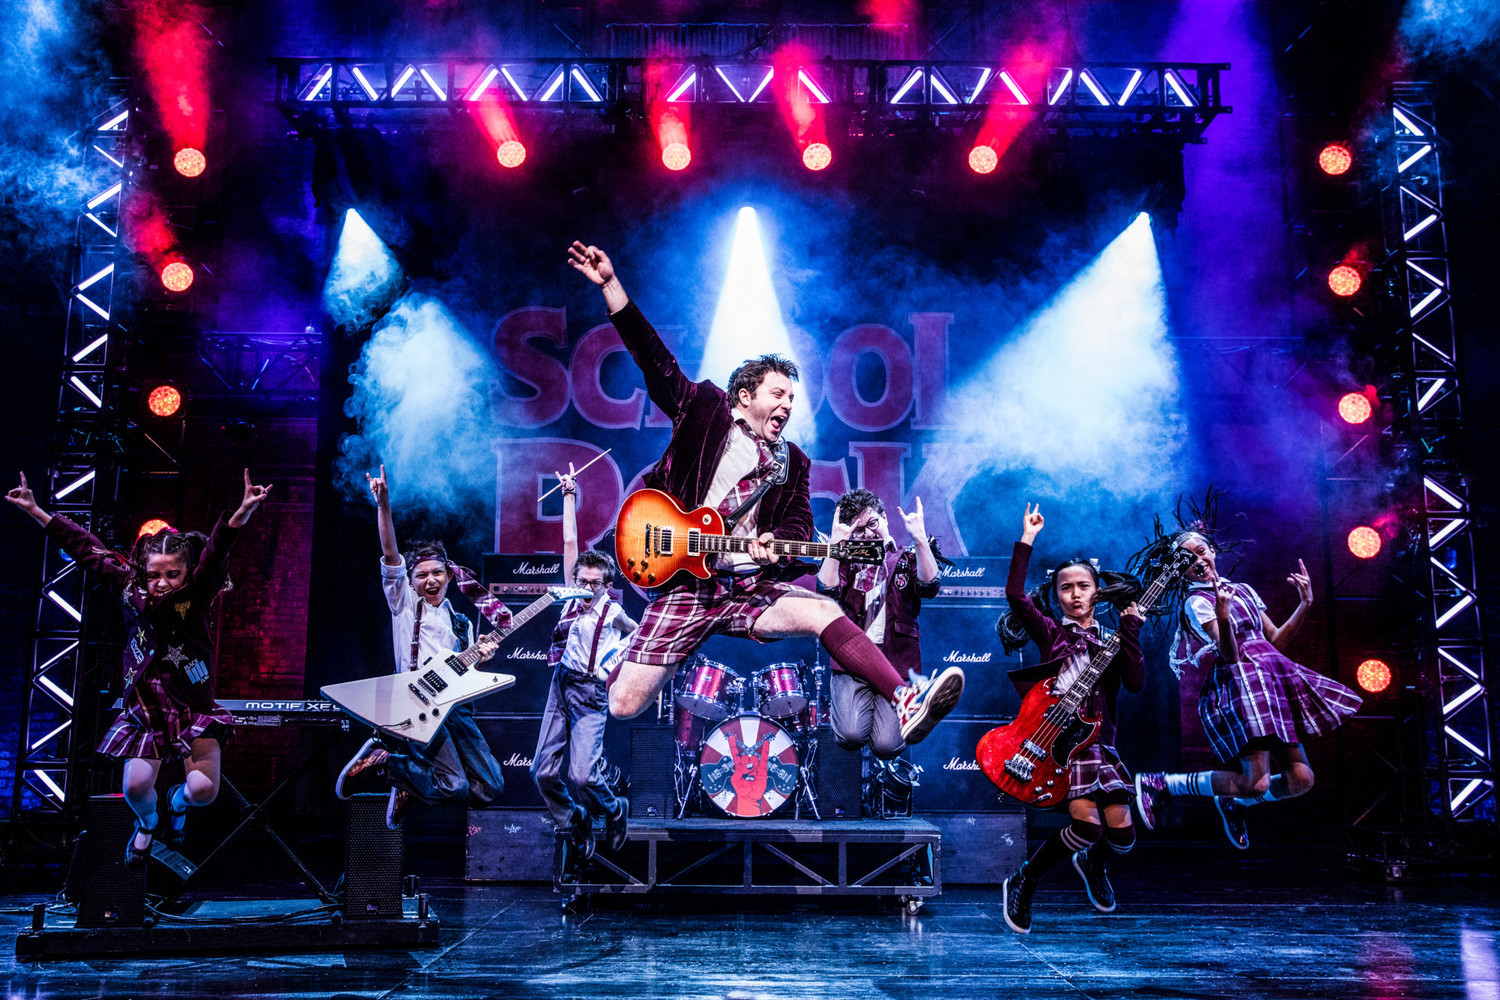 BWW Review: Kids Bring the Rock in SCHOOL OF ROCK at Mirvish